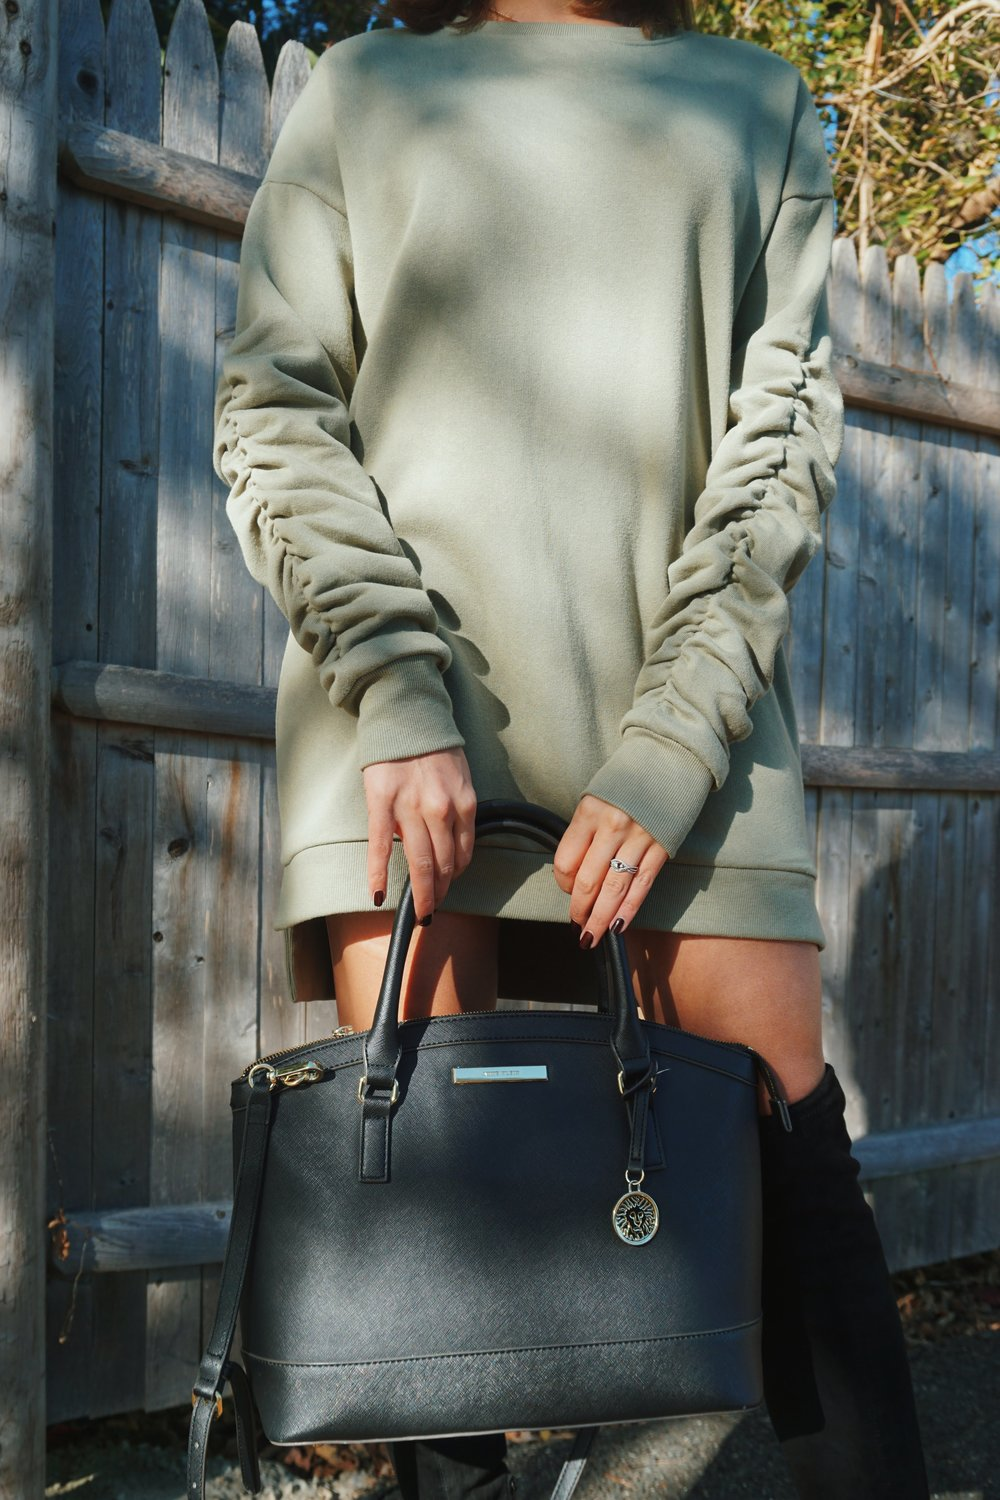 Green sweater dress, knee high boots, and a black purse.